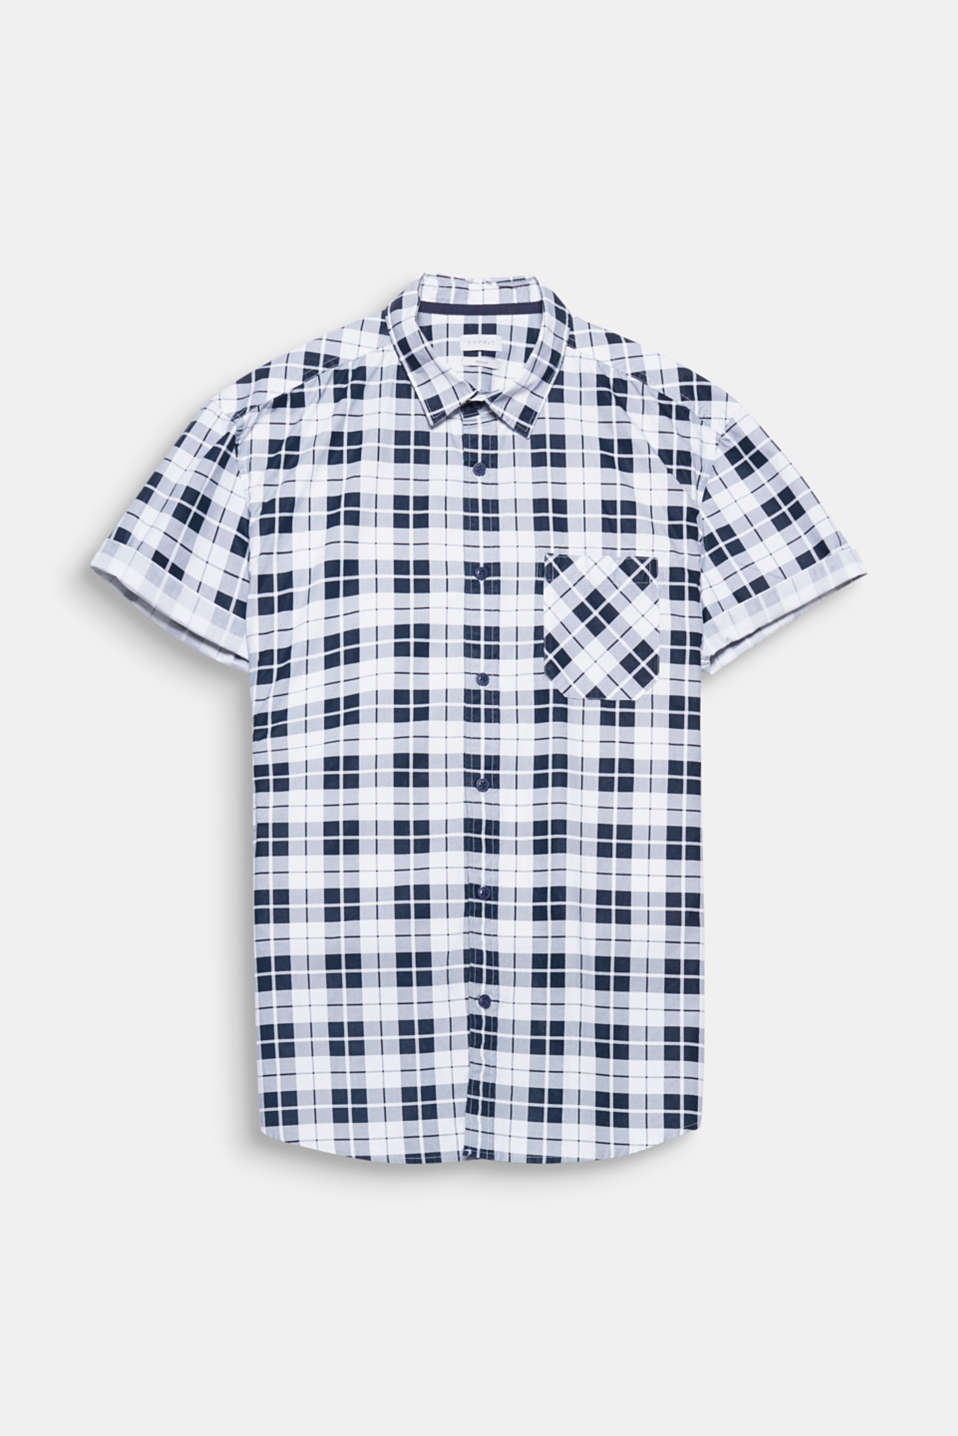 The striking checks give this shirt made of smooth cotton fabric a striking urban look.